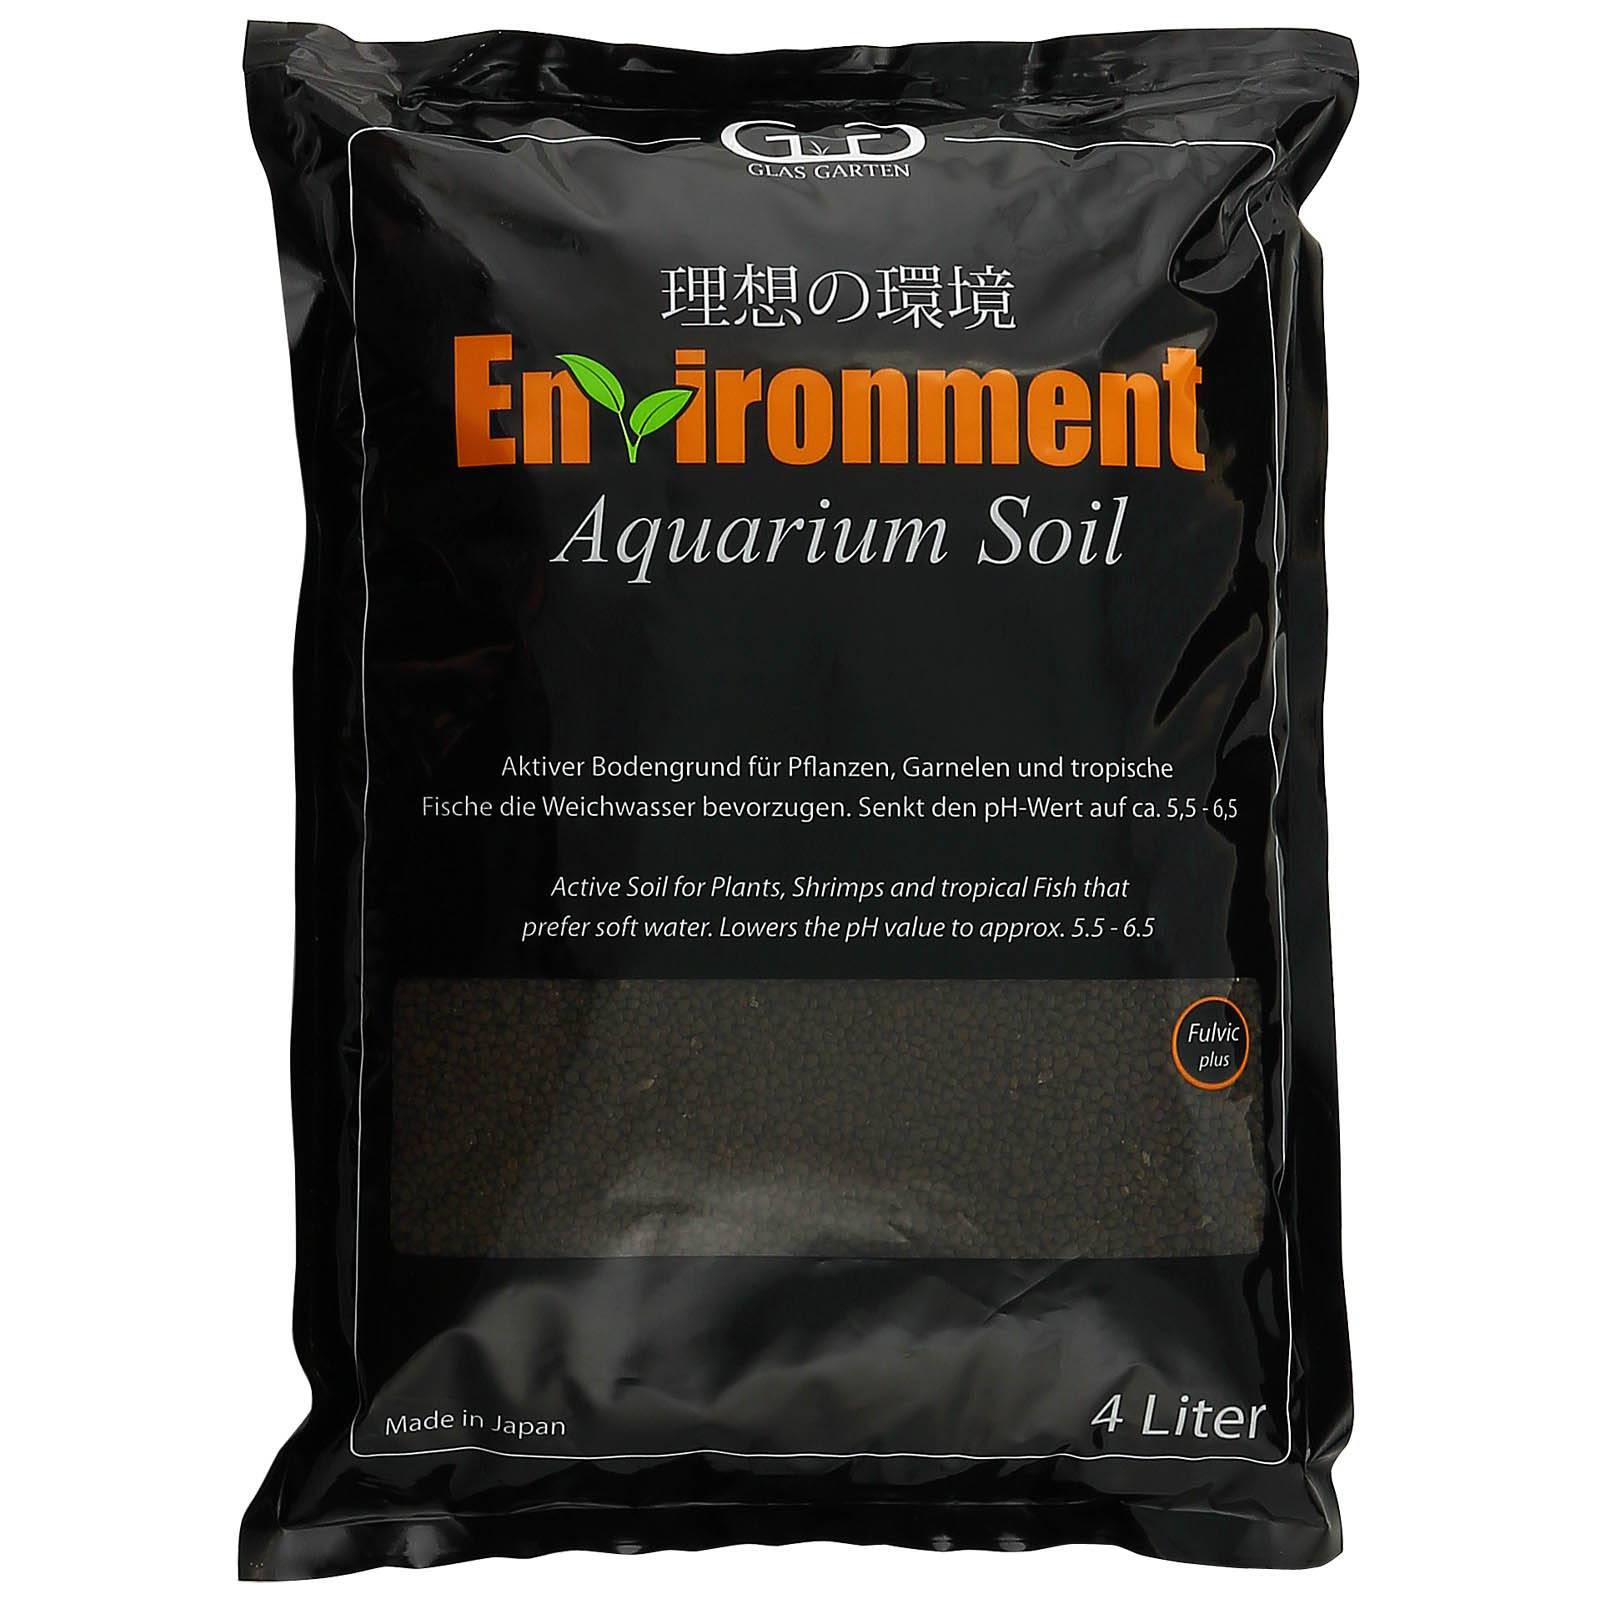 Glasgarten environment aquarium soil for Soil environment